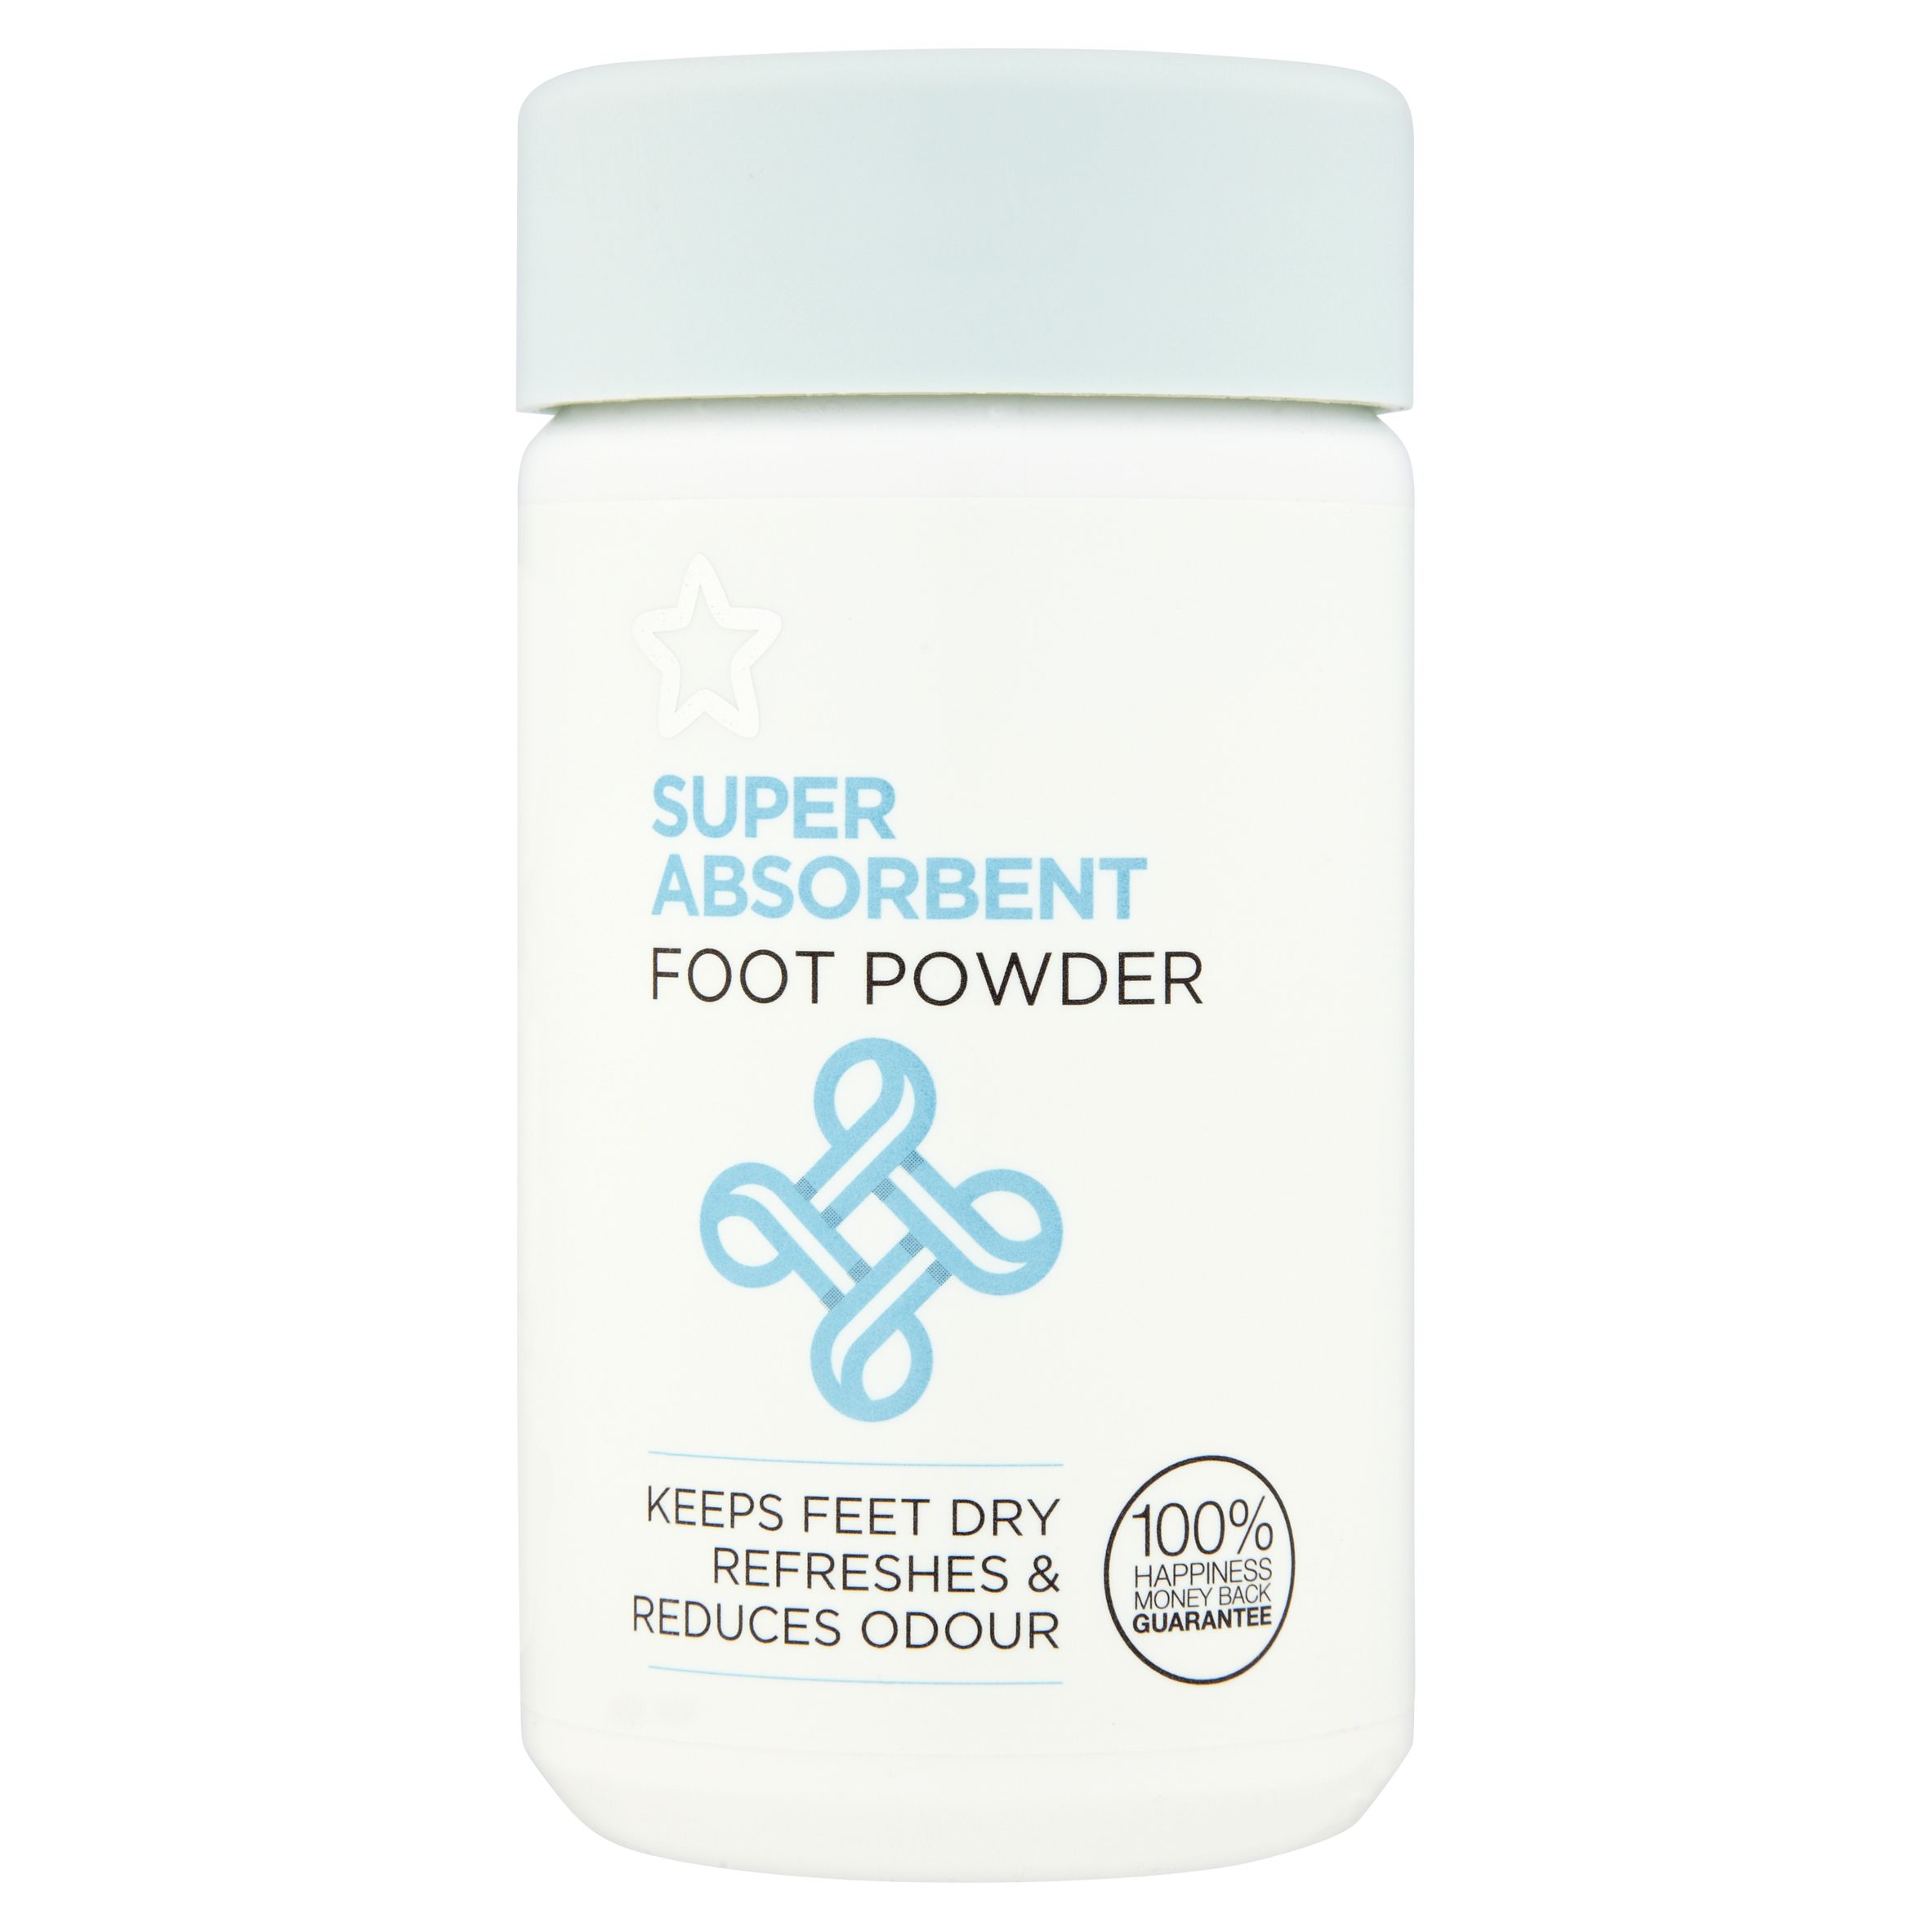 Superdrug Foot Powder (Superdrug/PA)